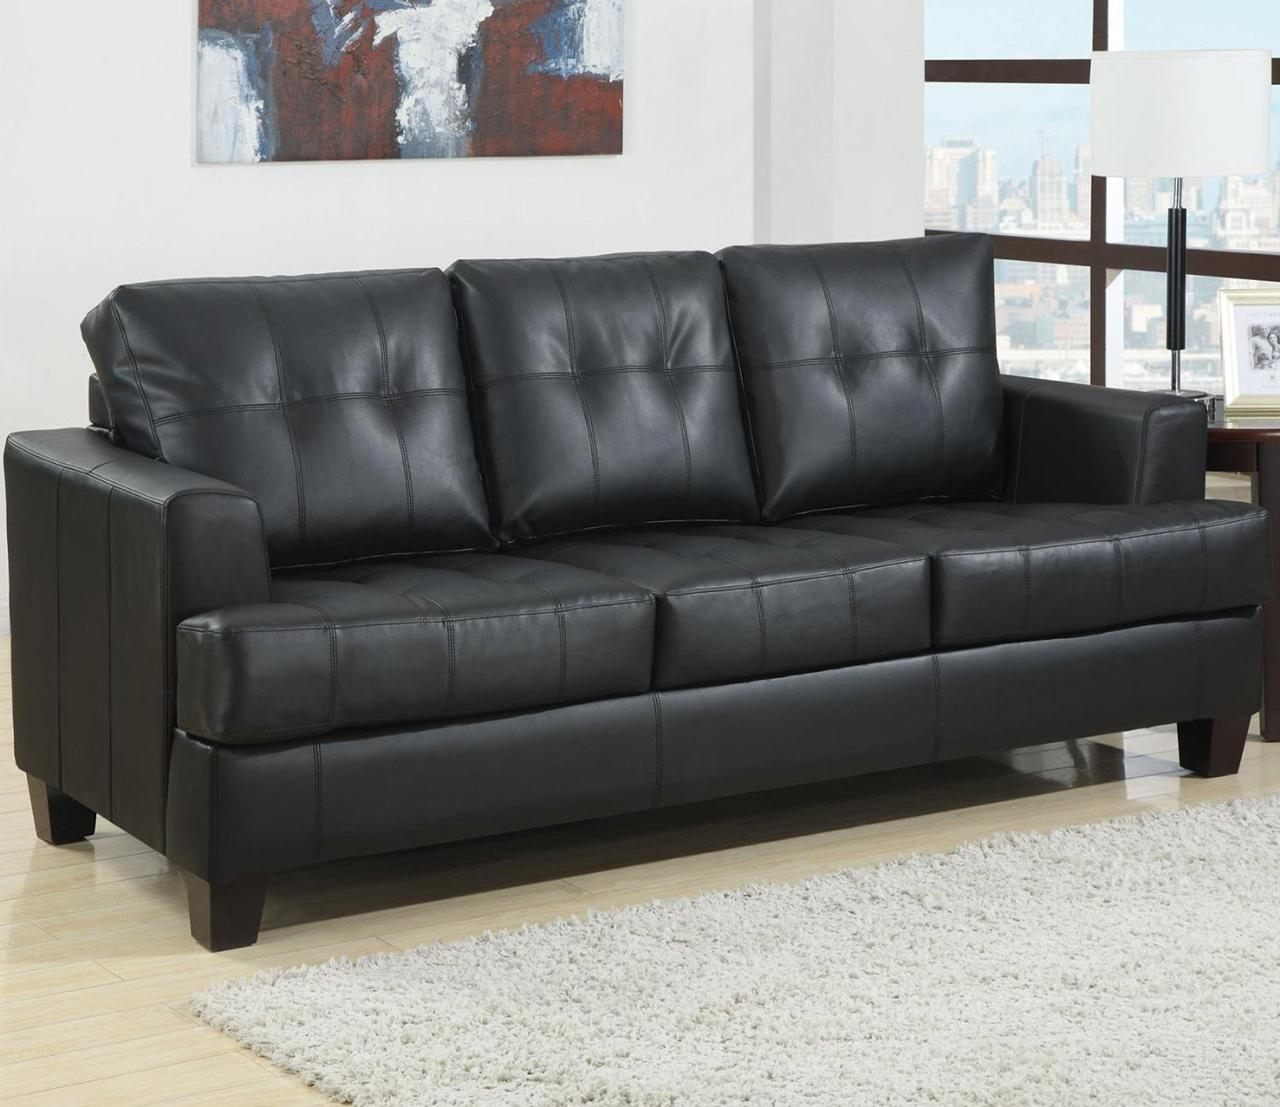 25 Best Sleeper Sofa Beds To Buy In 2017 Regarding Black Leather Convertible Sofas (Image 1 of 20)